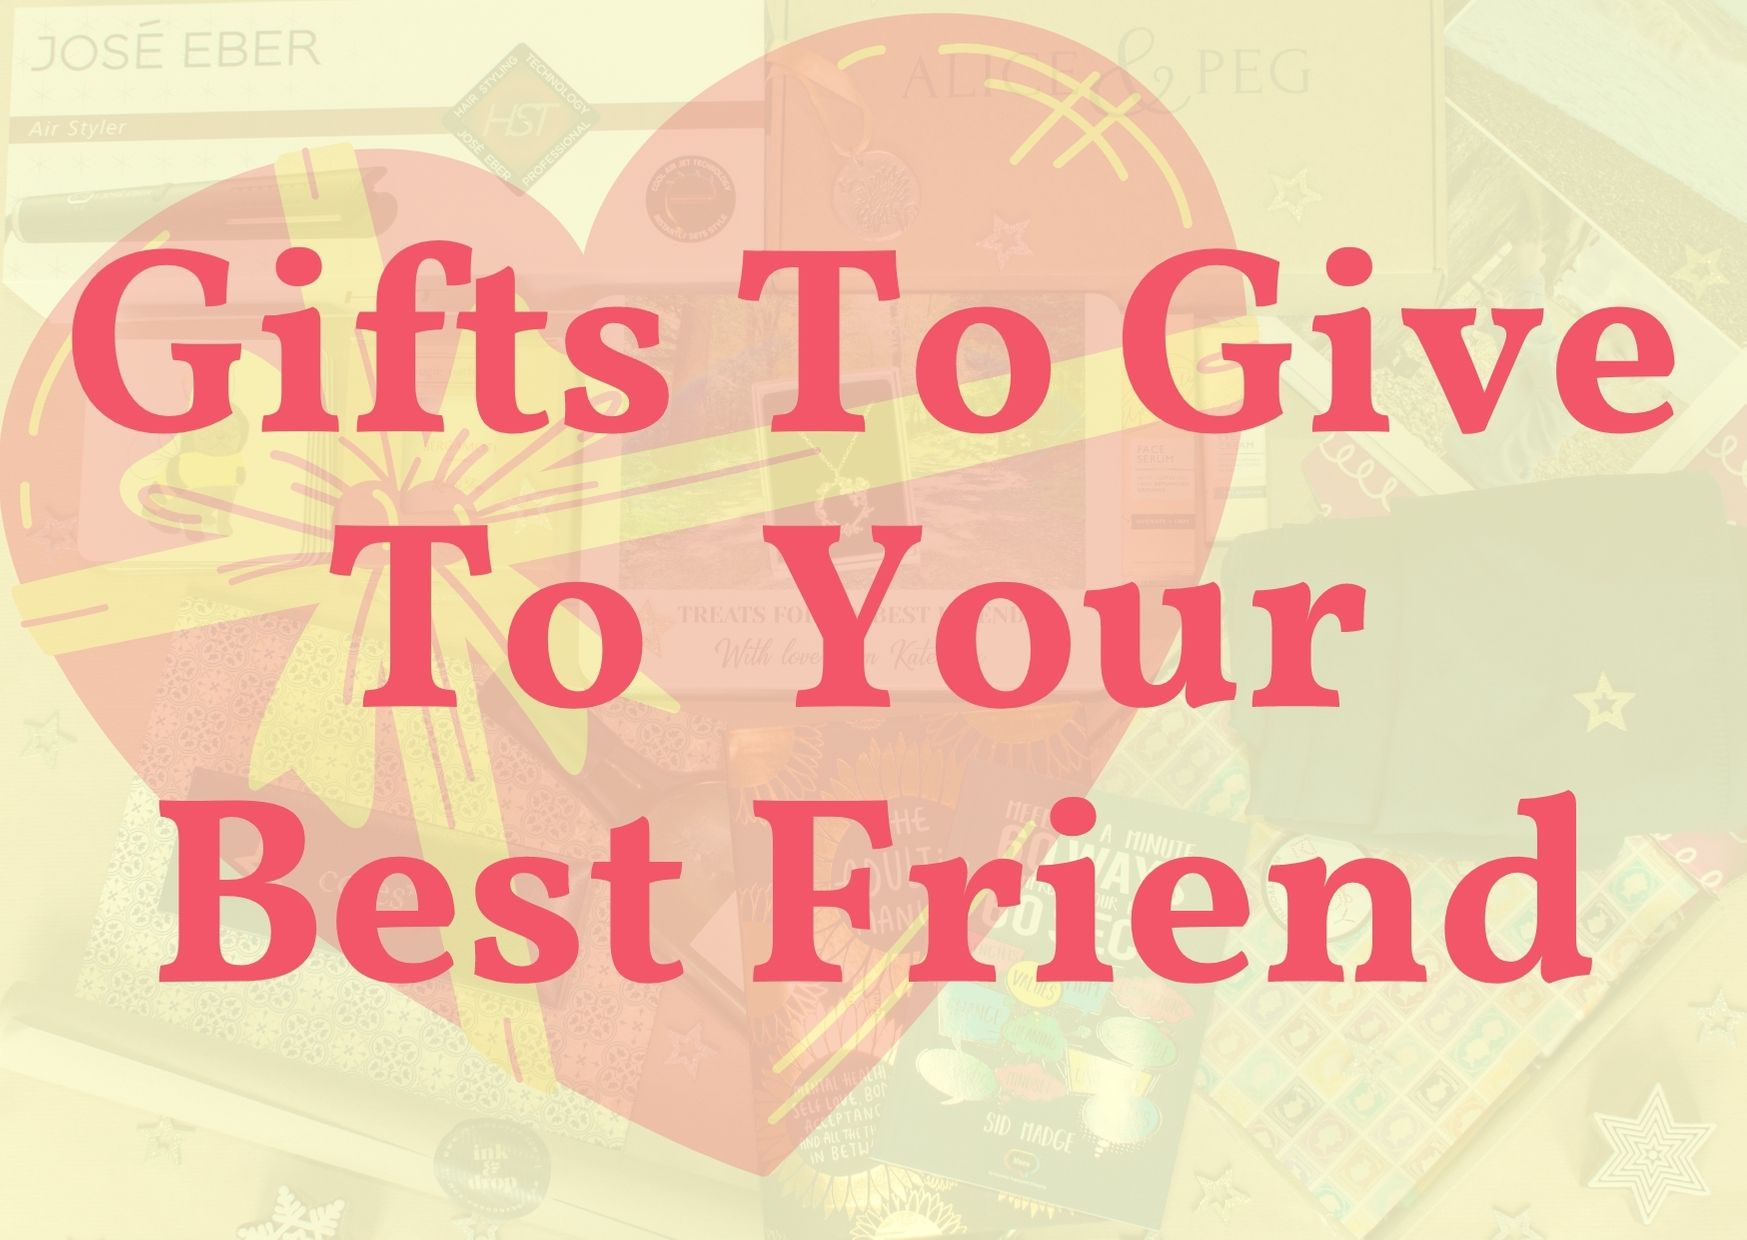 Gifts To Give To Your Best Friend text over image of all the ideas in the guide